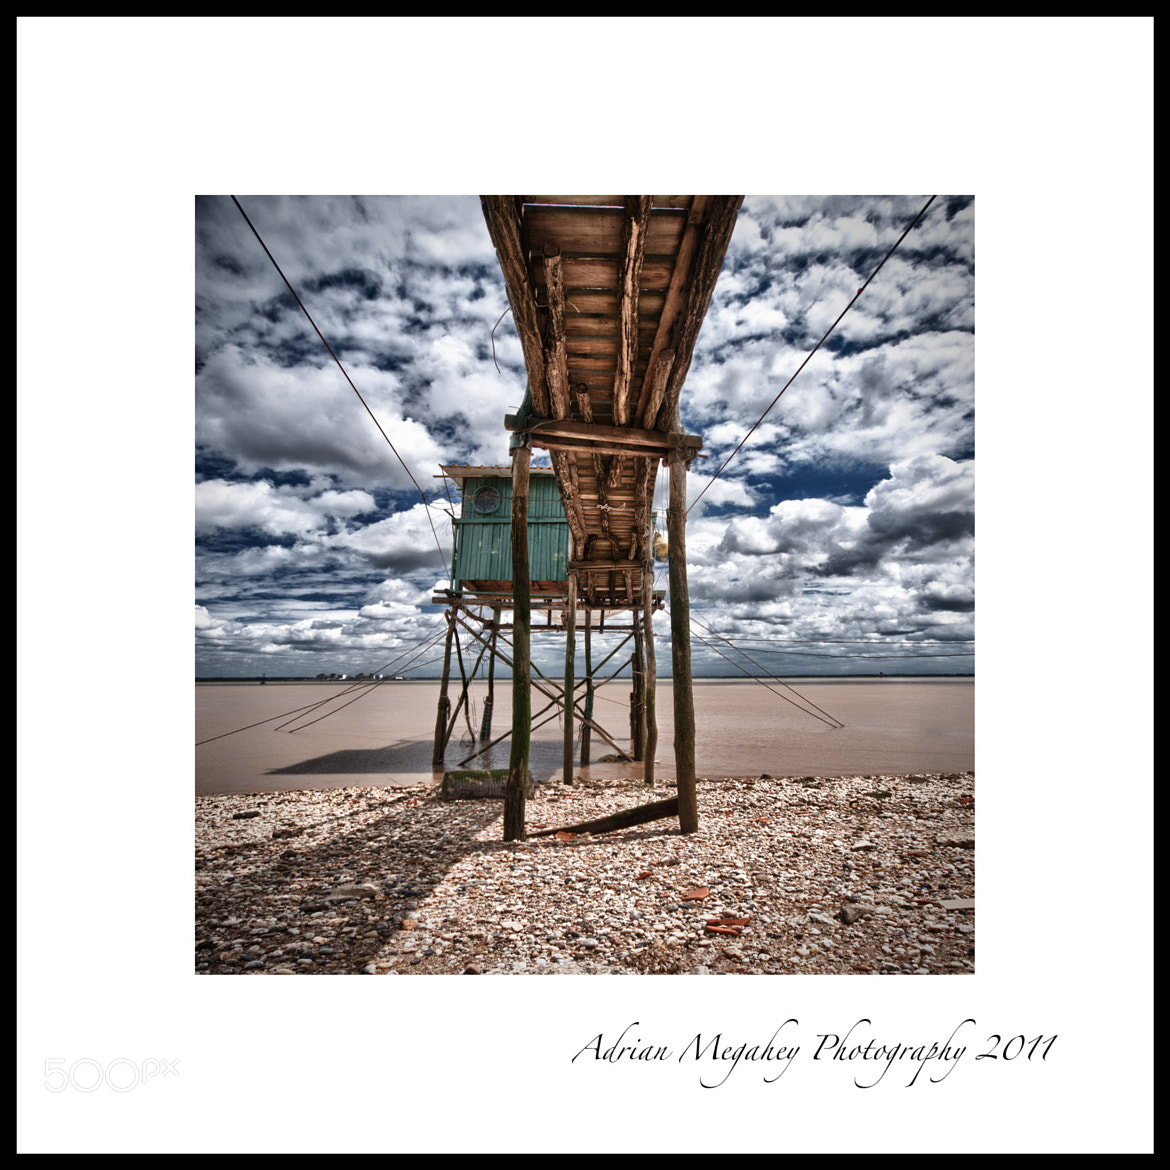 Photograph Fishing Hut, Gironde by adrian megahey on 500px